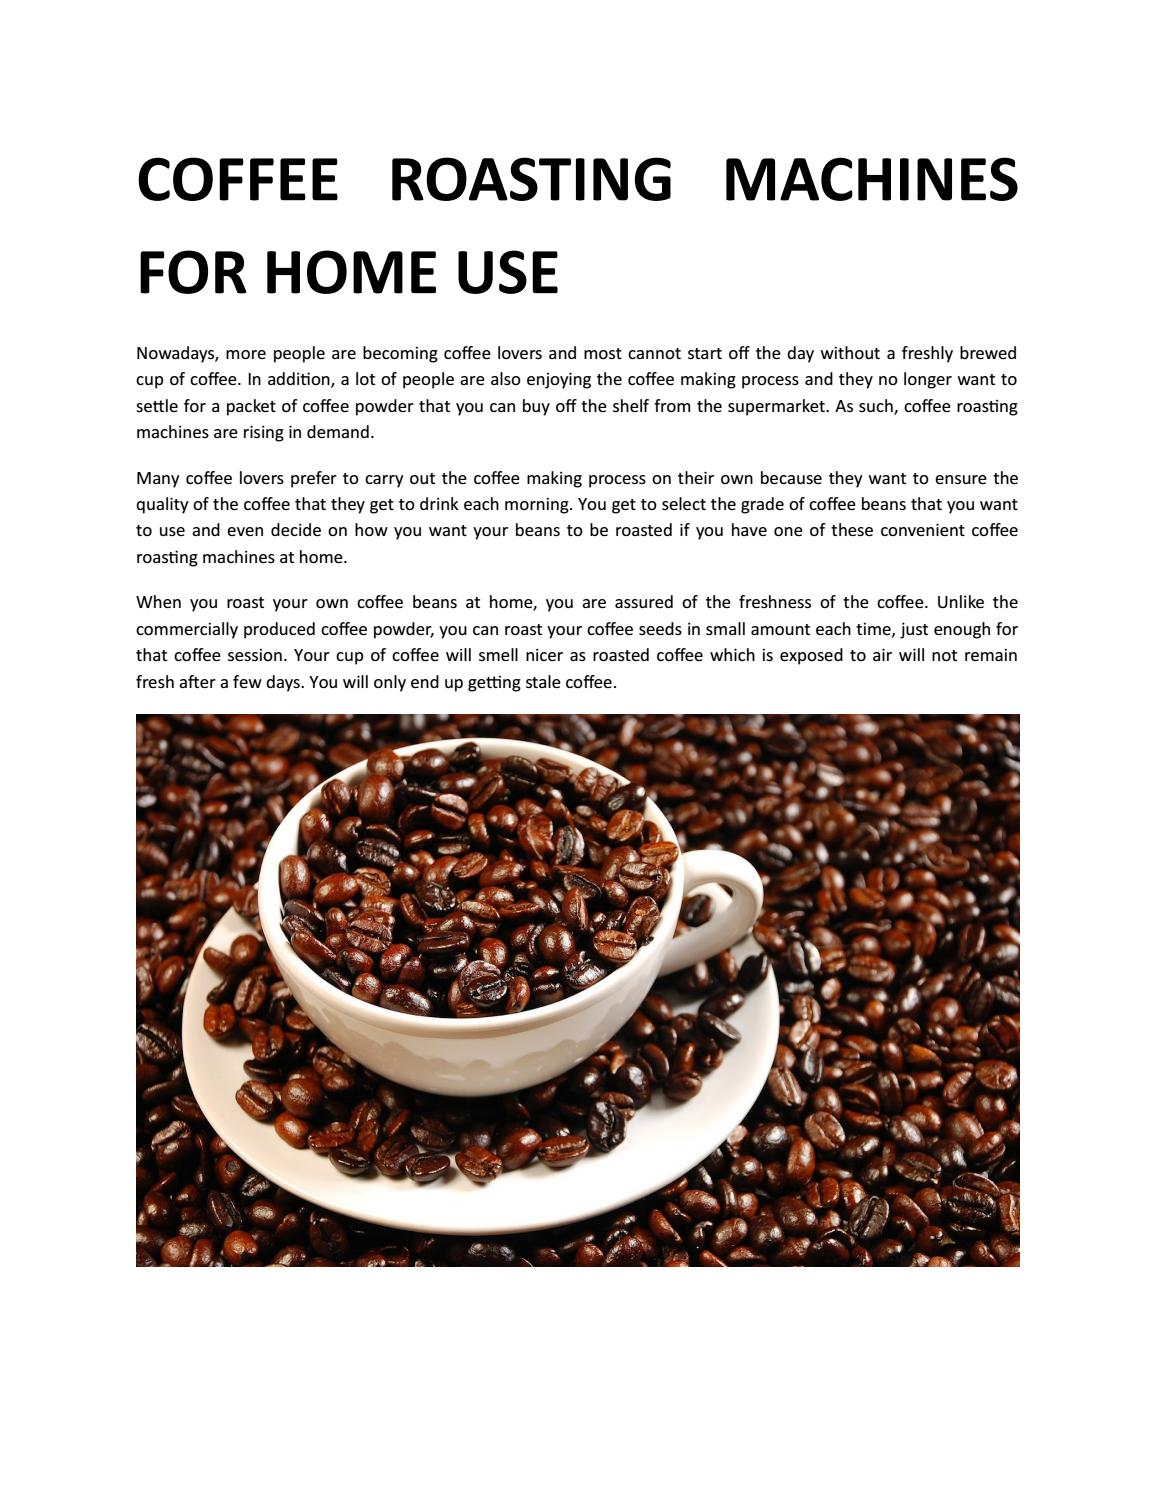 COFFEE ROASTING MACHINES FOR HOME USE by Hodl Fuel - issuu